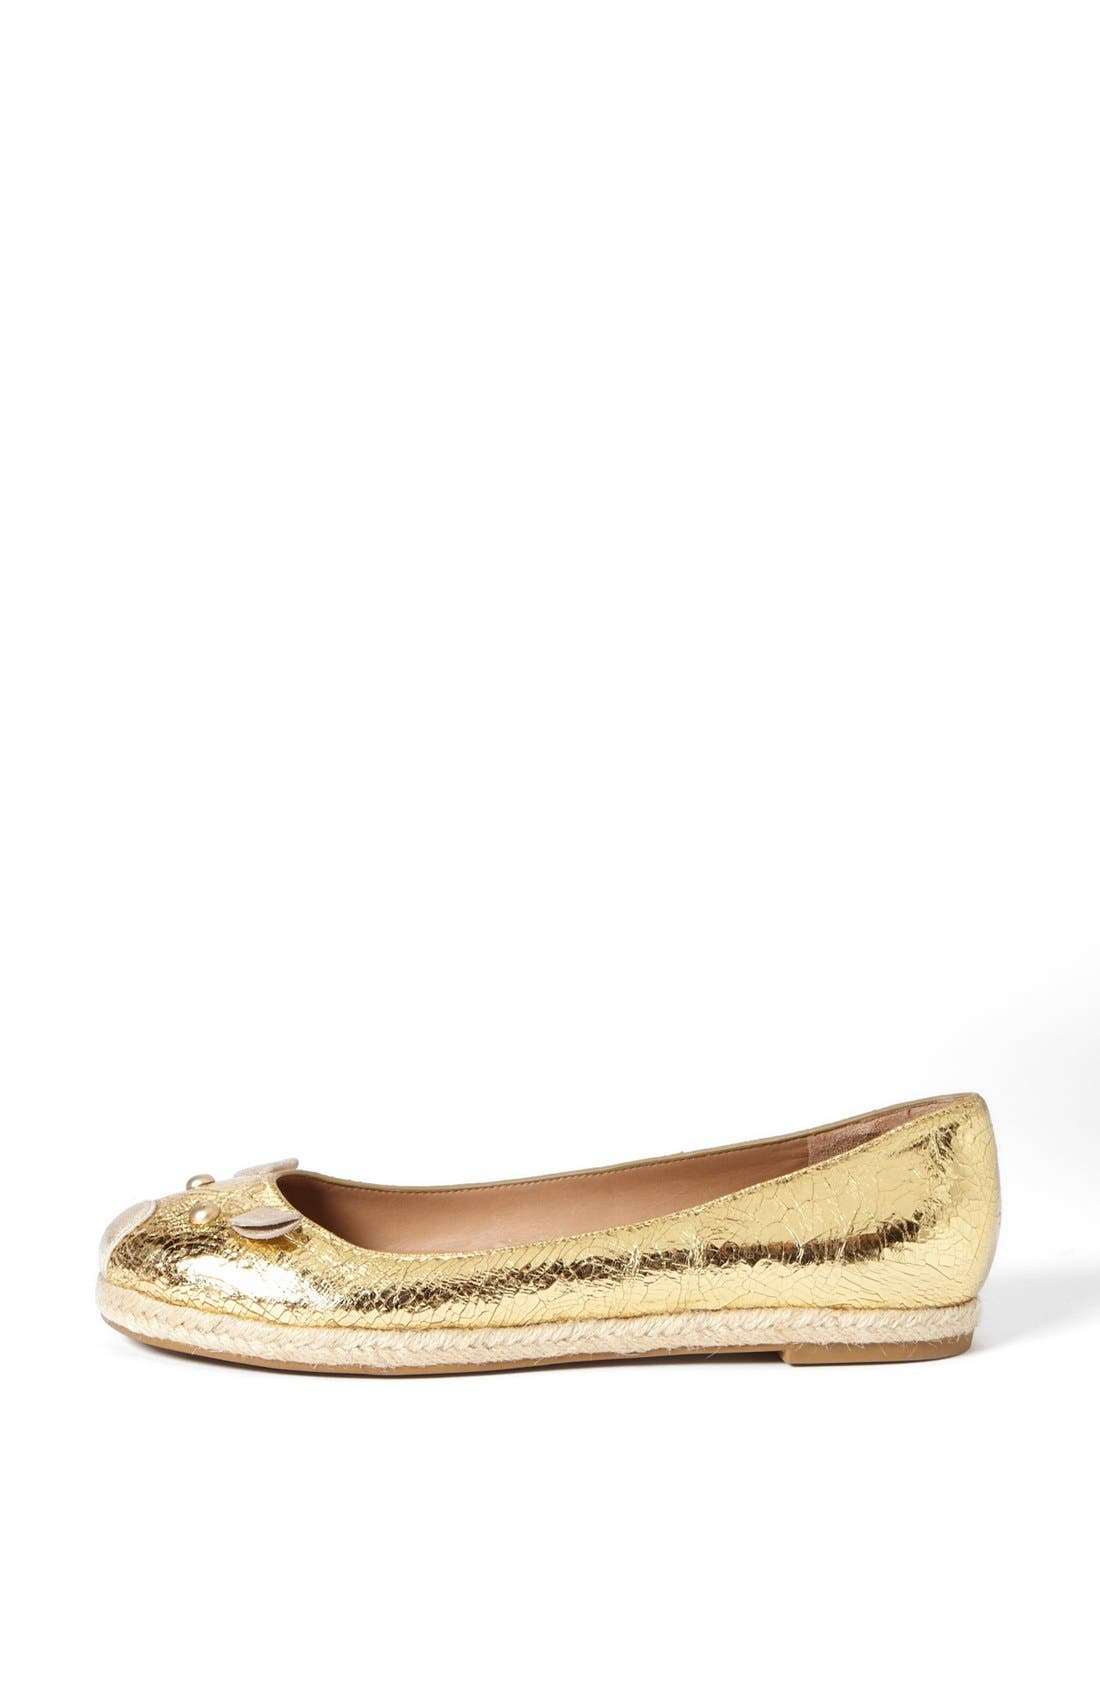 Alternate Image 4  - MARC BY MARC JACOBS 'Mouse' Metallic Calfskin Leather Espadrille Flat